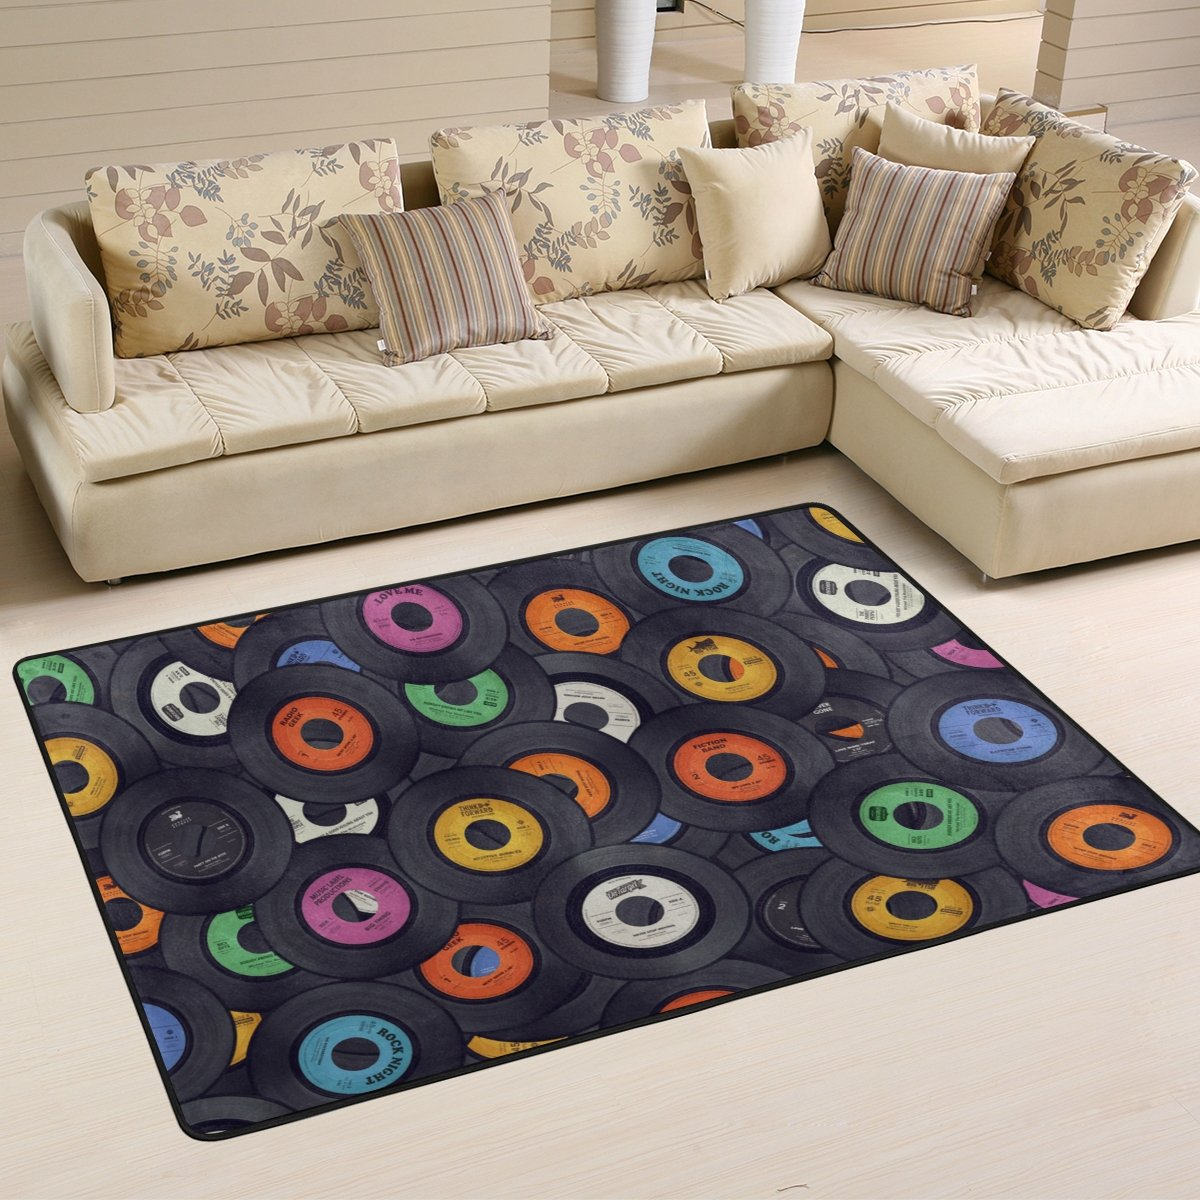 My Little Nest Multicolor Music Records Area Rug 4 x 6 Lightweight Modern Floor Mat Non-Slip Indoor Outdoor Decor Soft Carpet For Bedroom Living Dining Room